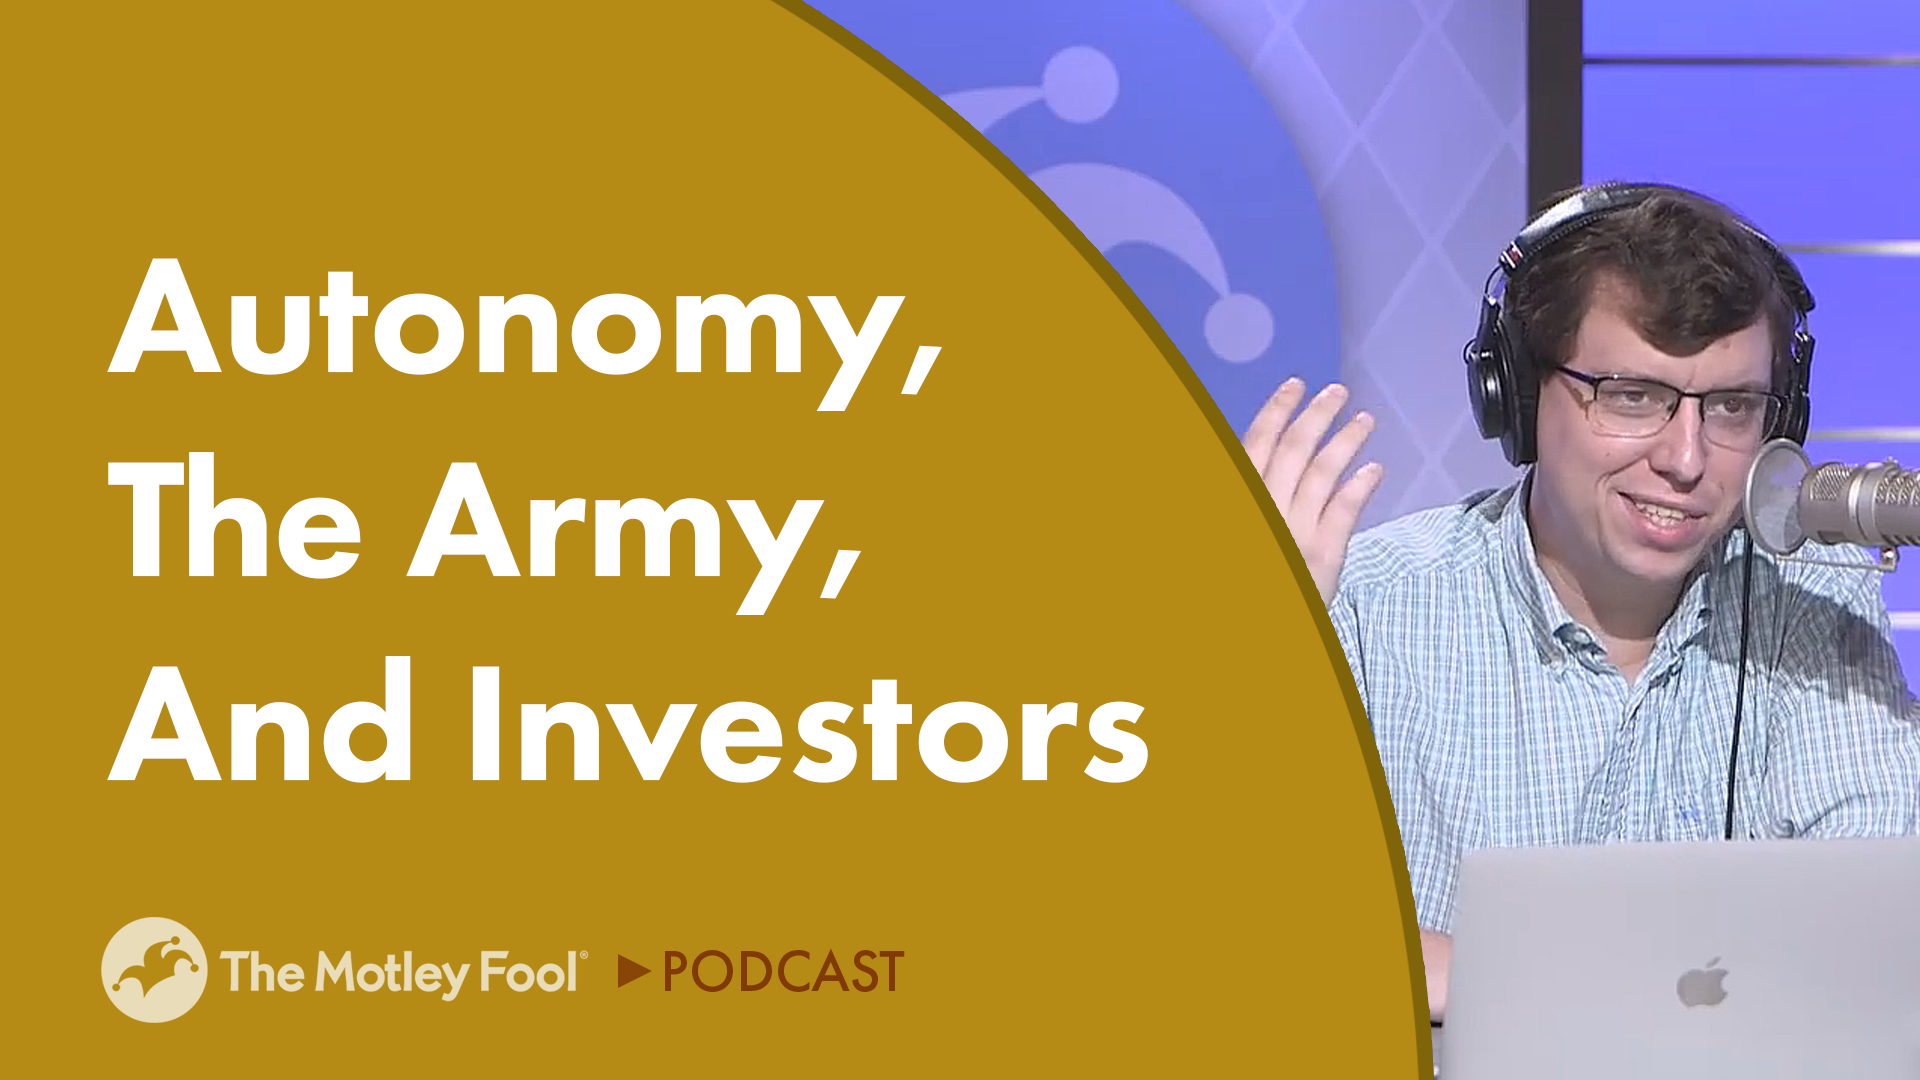 Autonomy, the Army, and Investors